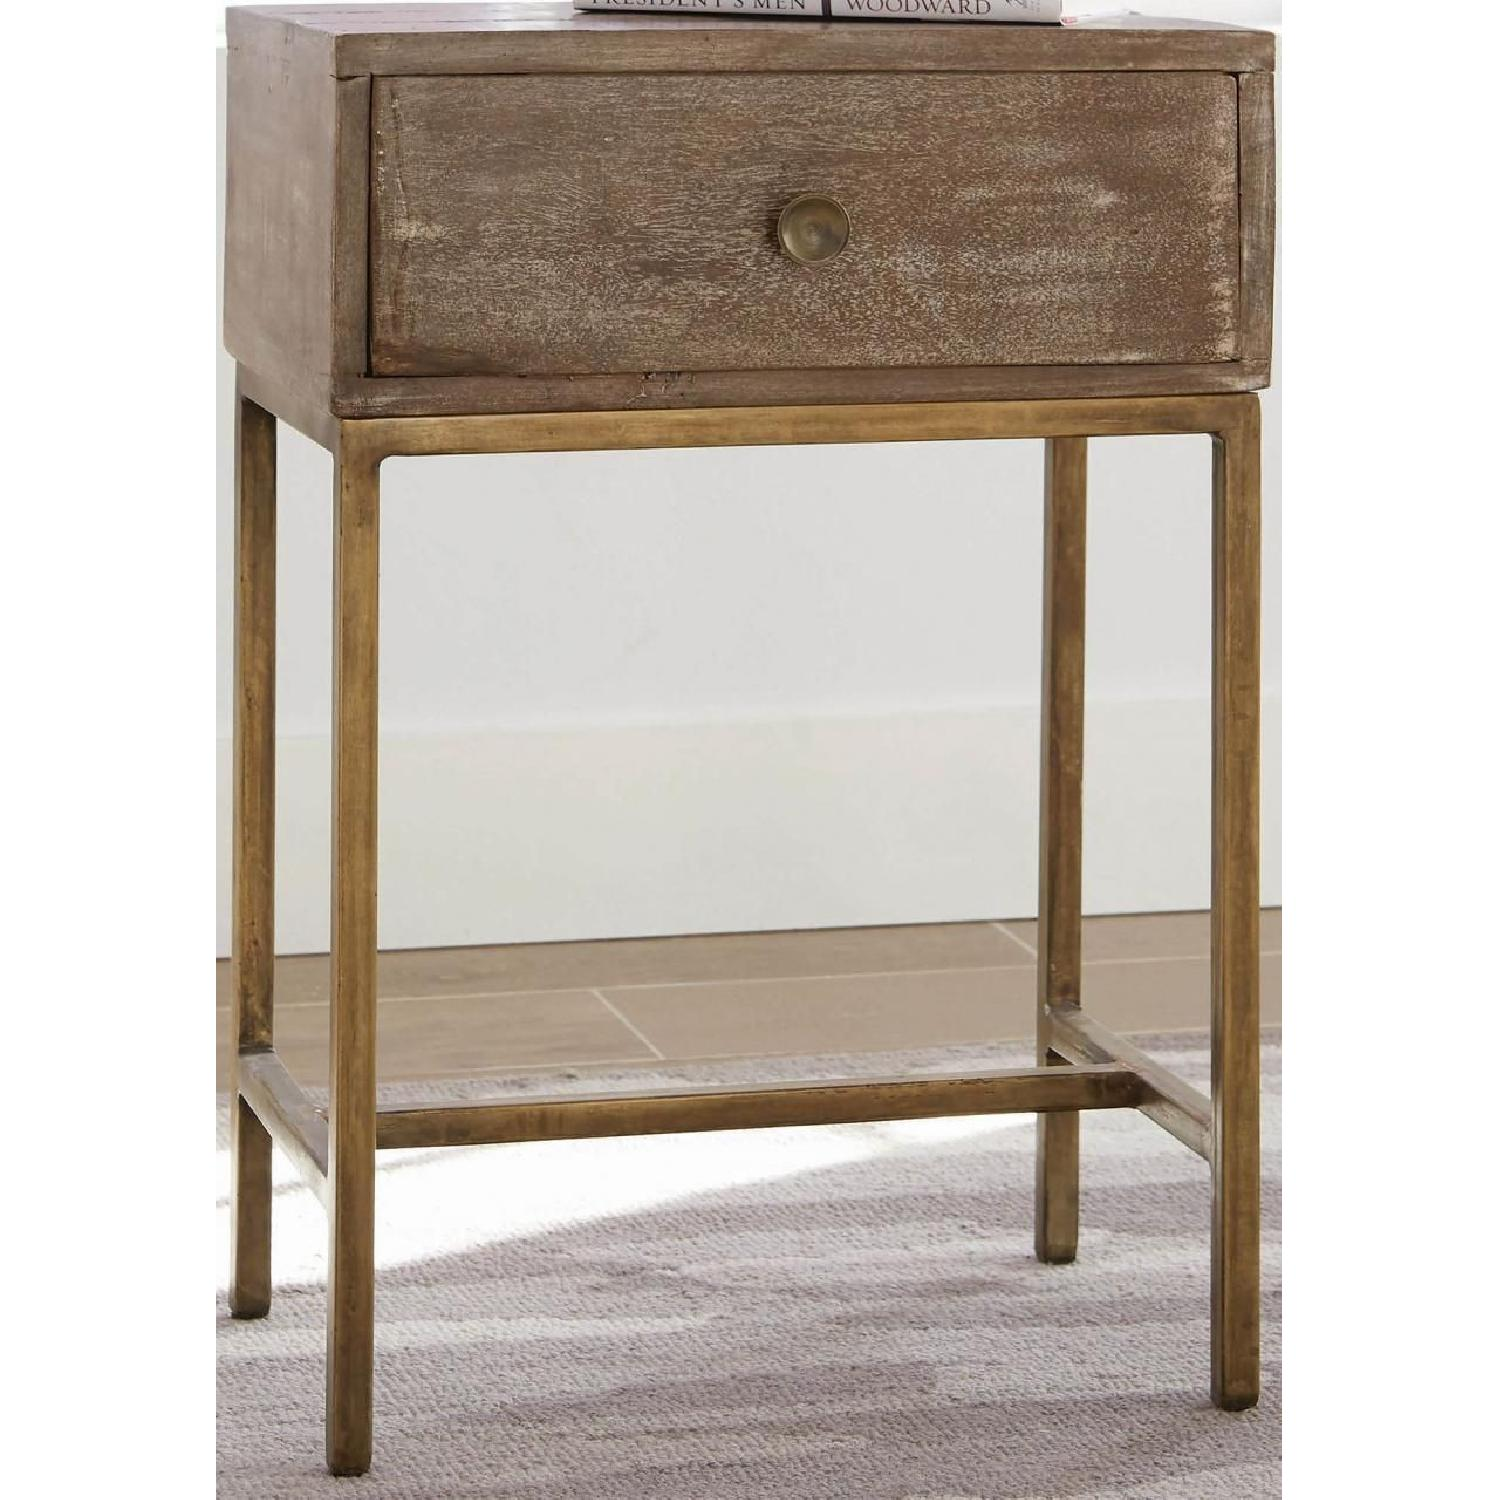 Accent Table w/ Drawer in Weathered Natural & Antique Gold - image-11